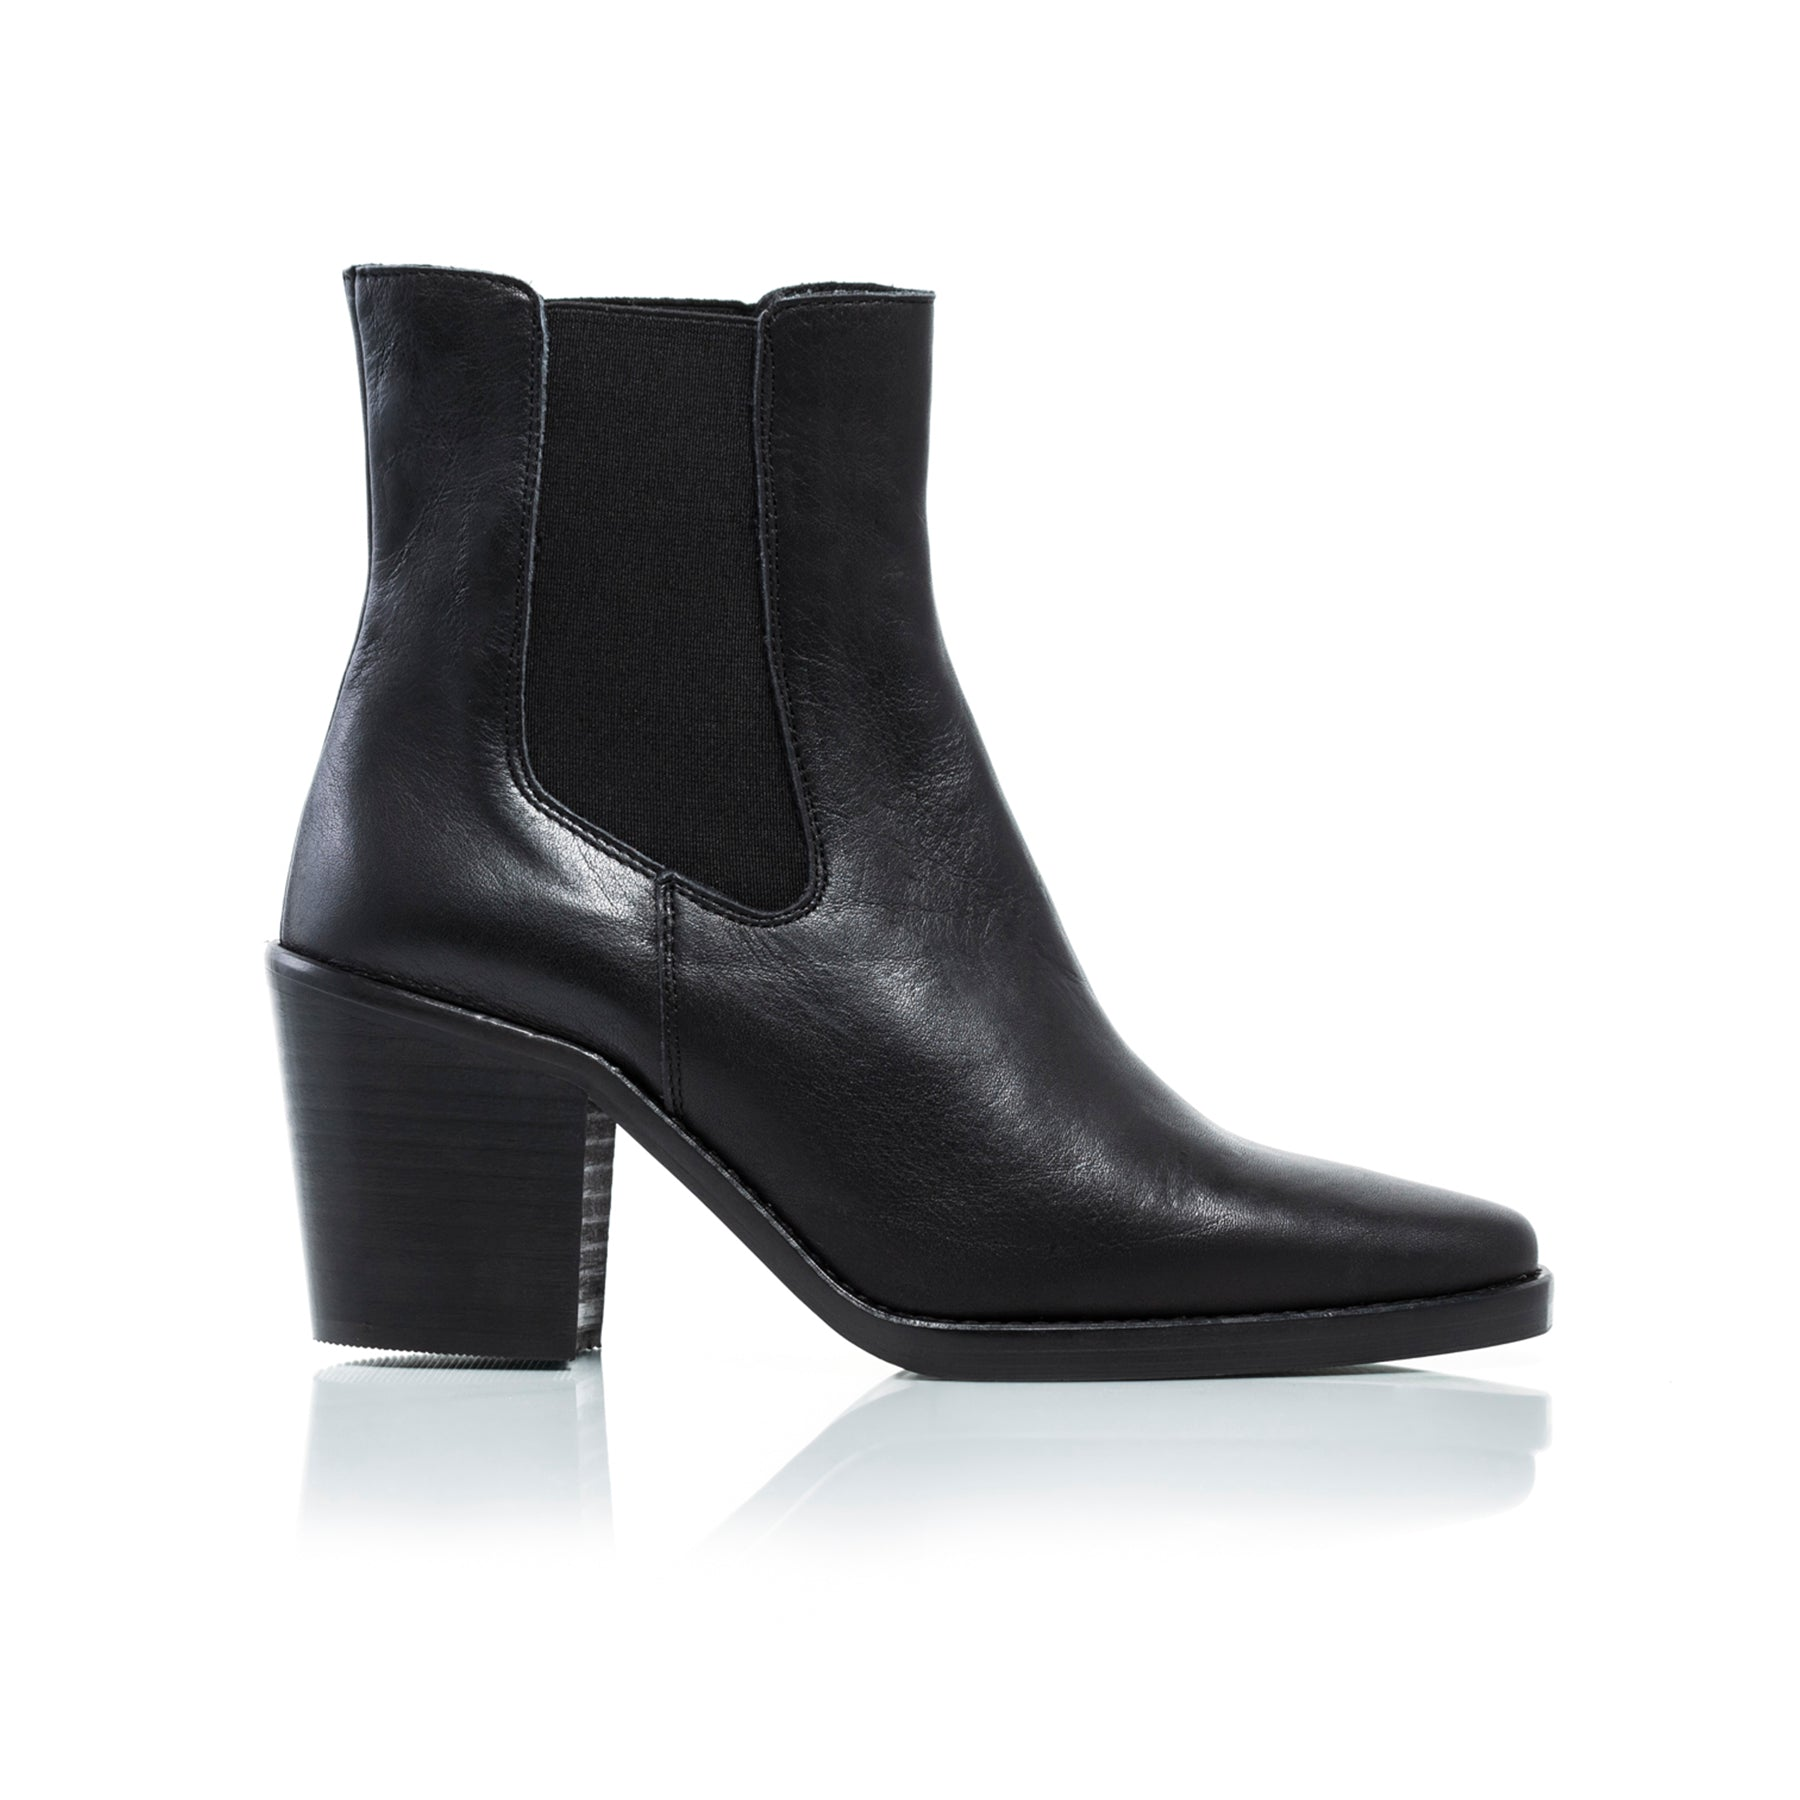 Kentucky Black Leather Ankle Boots